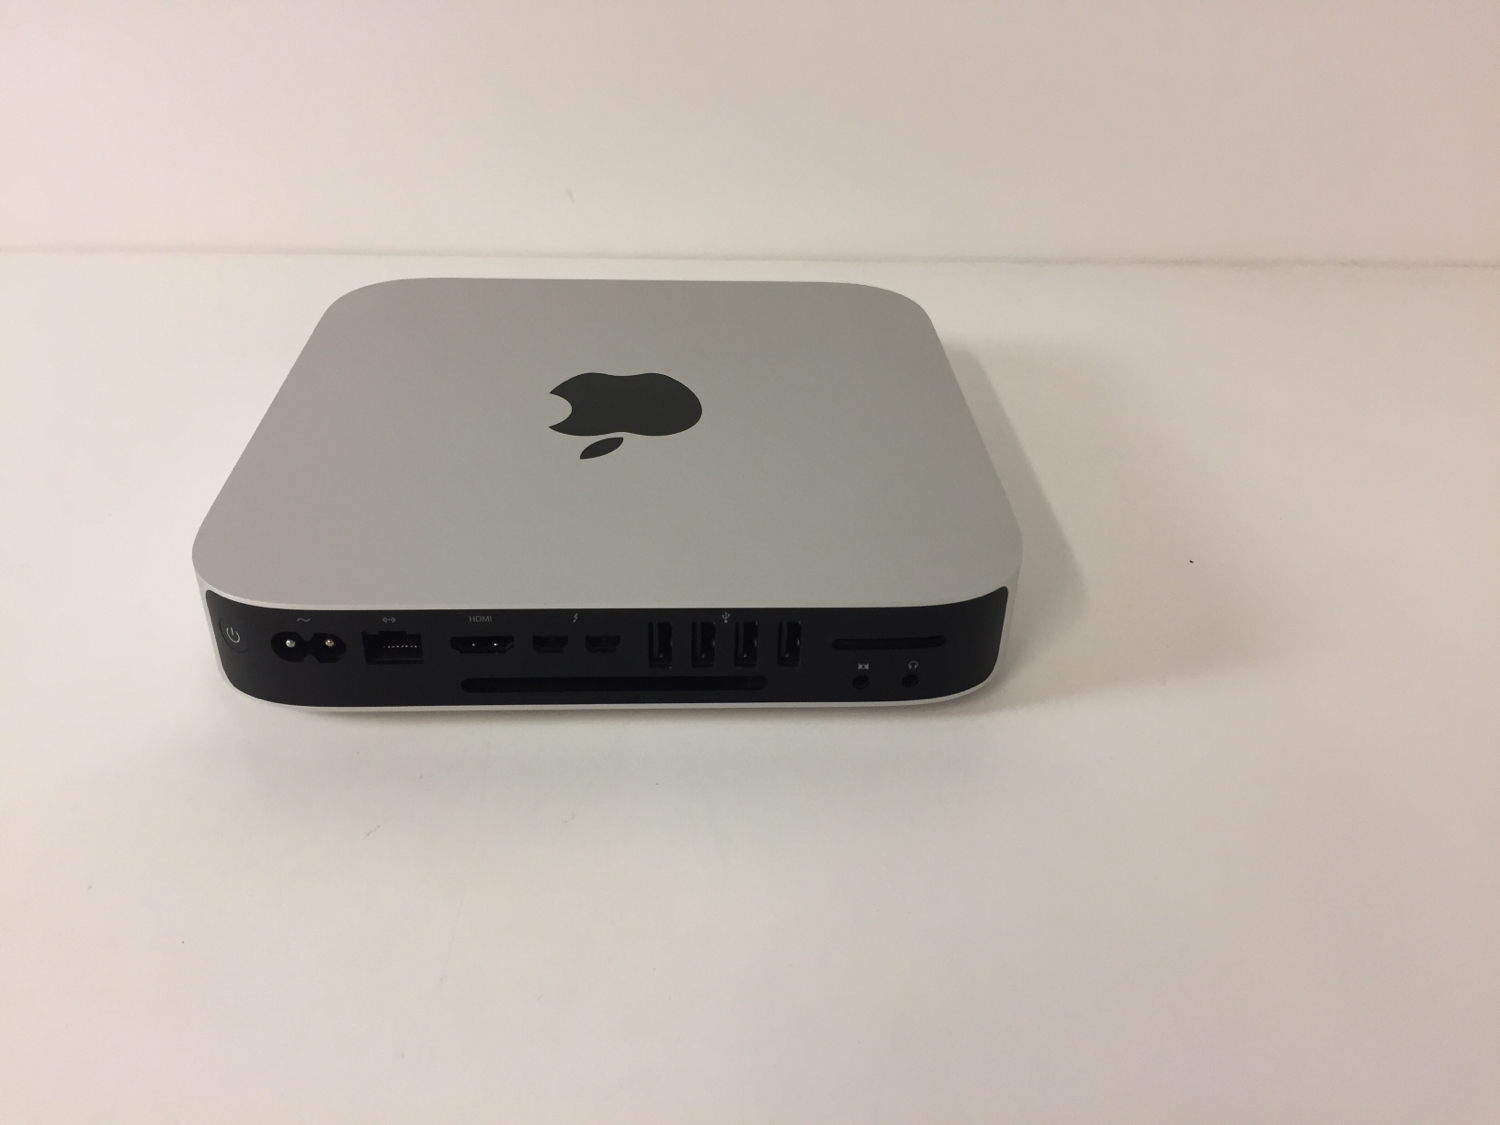 Mac Mini Late 2014 (Intel Core i5 1.4 GHz 4 GB RAM 500 GB HDD), Intel Core i5 1.4 GHz, 4 GB RAM, 500 GB HDD, obraz 2